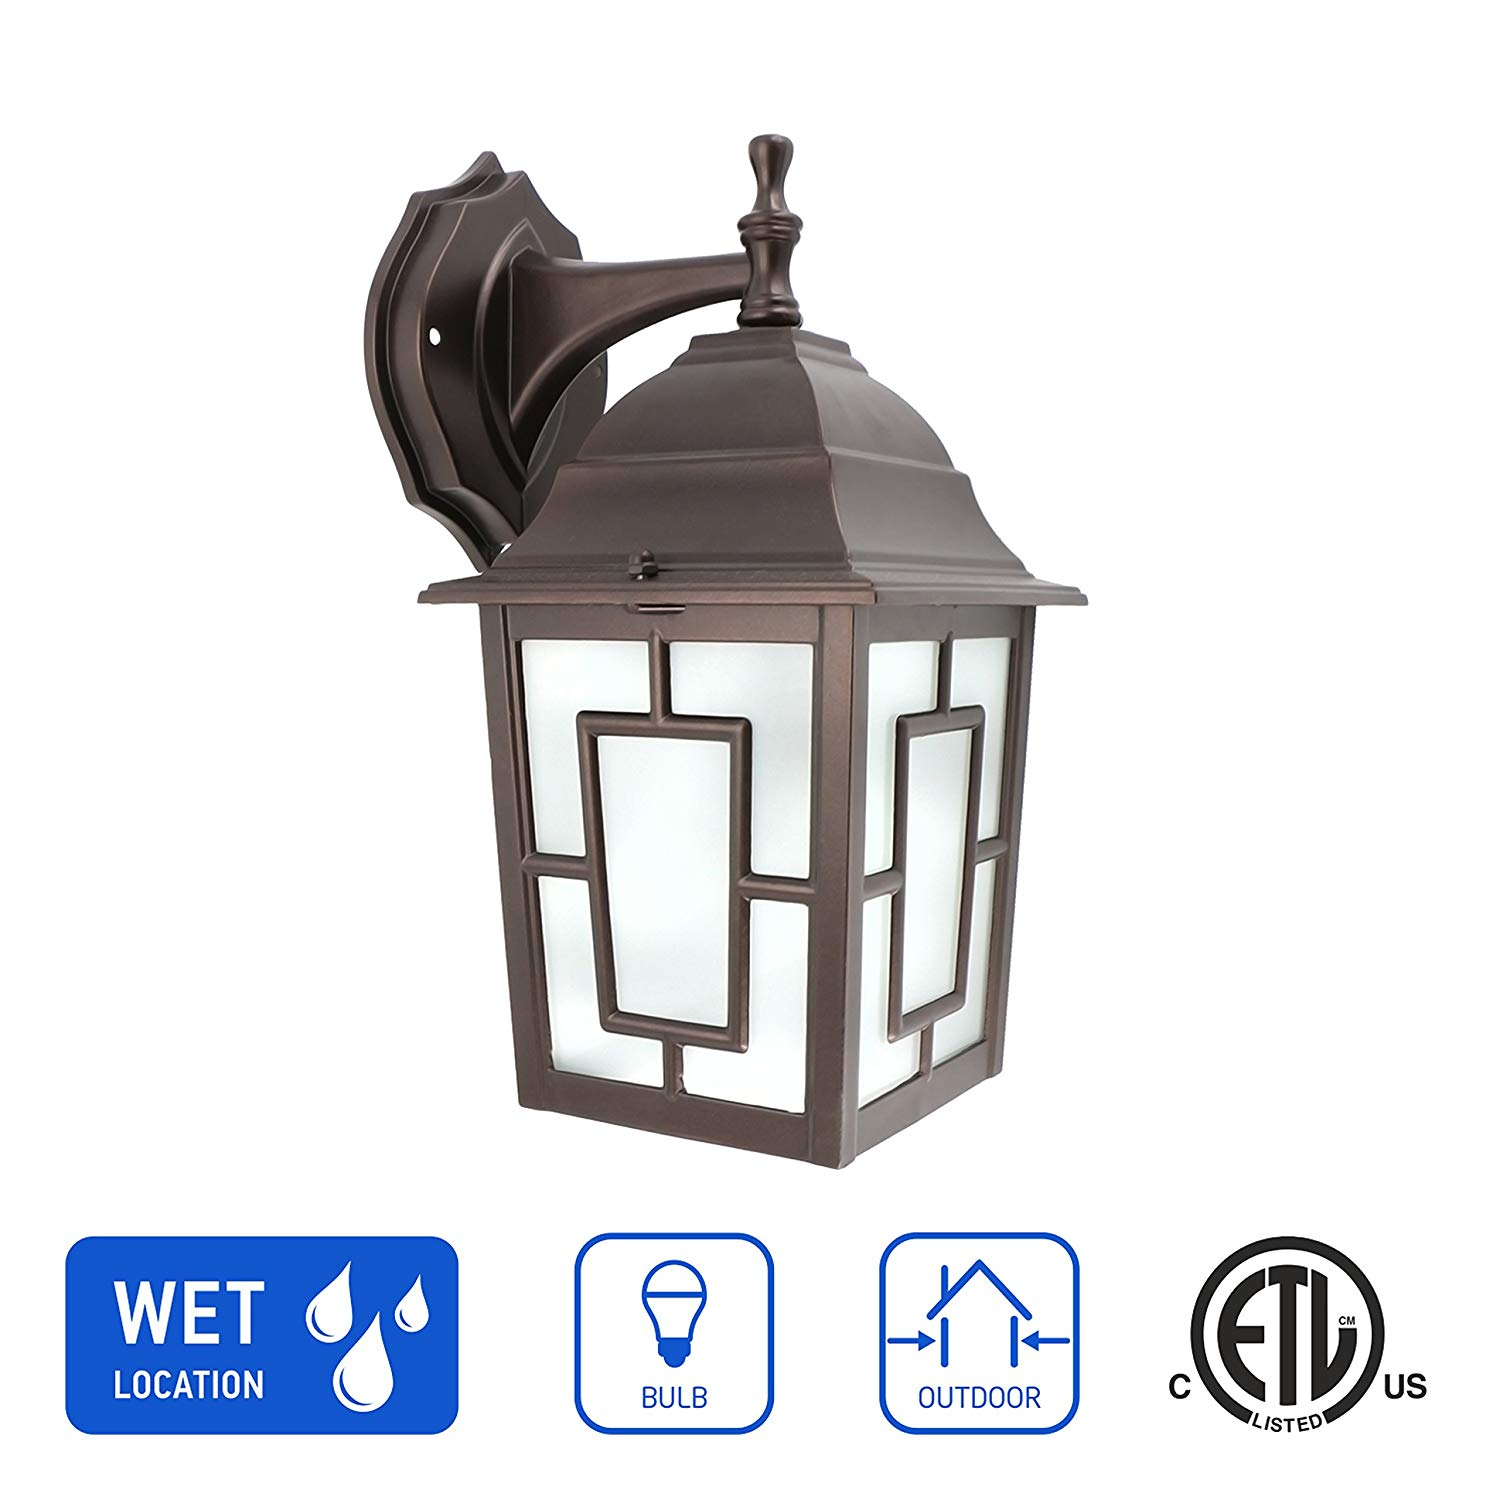 IN HOME 1-Light Outdoor Exterior Wall Down Lantern, Traditional Porch Patio Lighting Fixture L05 with One E26 Base, Water-Proof, Bronze Cast Aluminum Housing, Frosted Glass Panels, ETL Listed